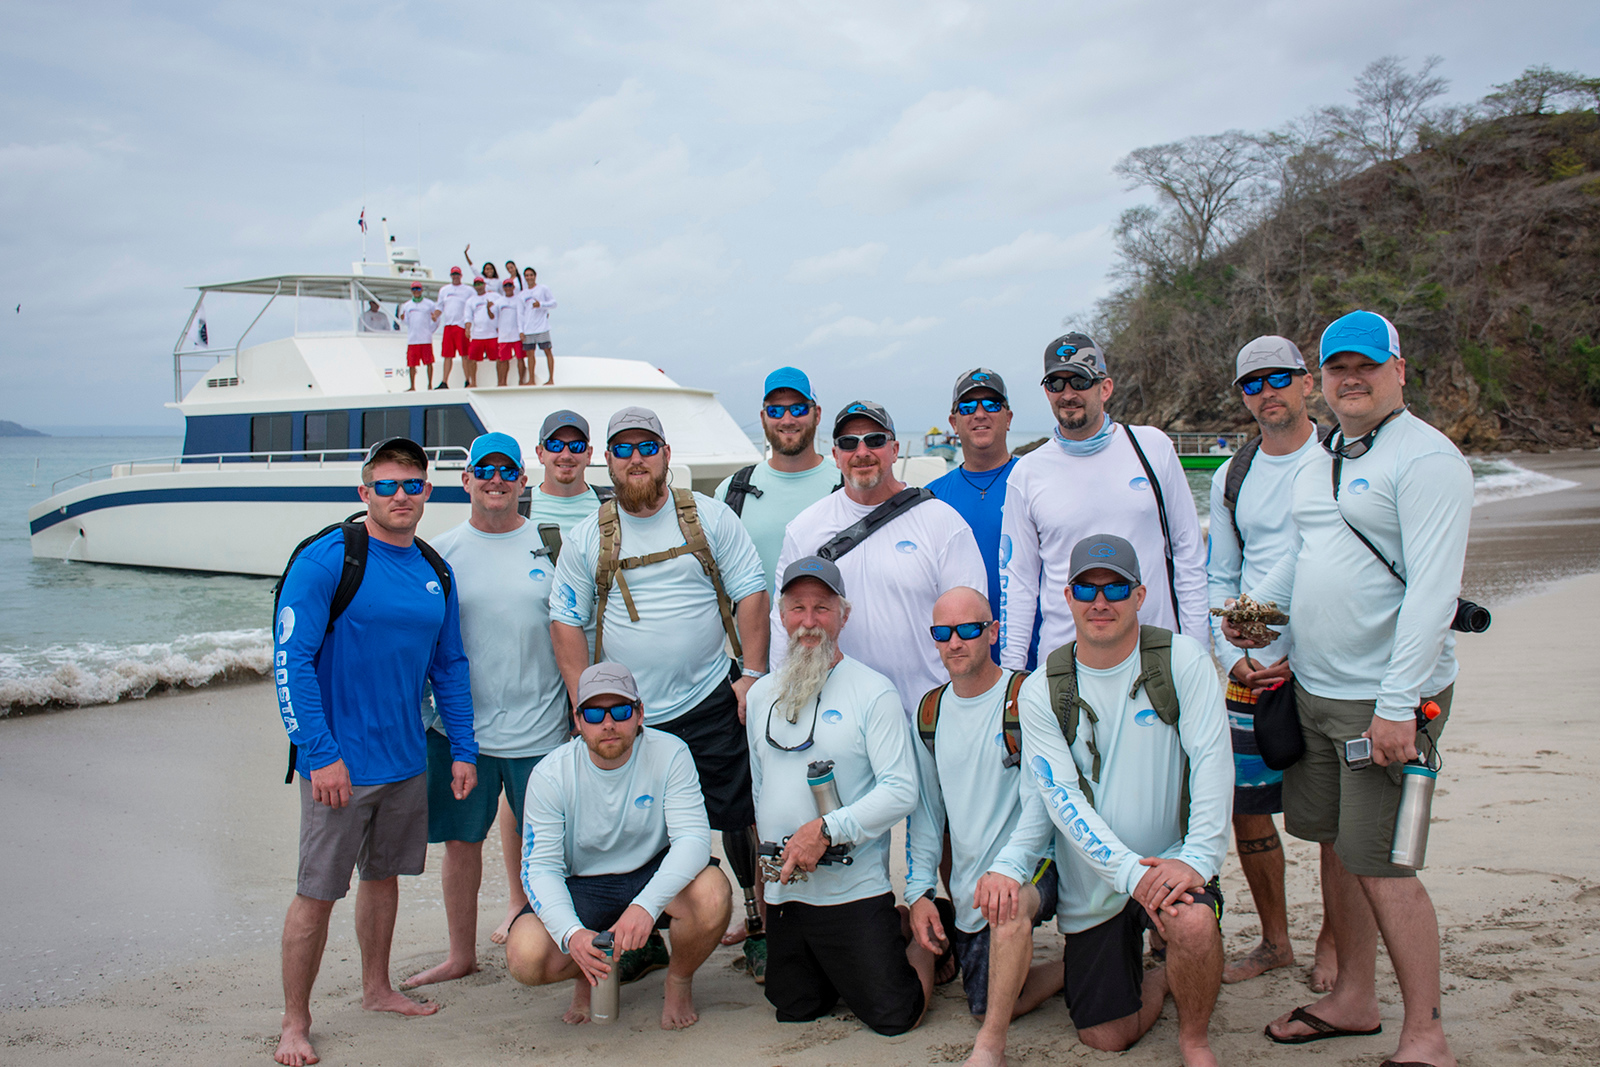 Costa Cat Tours donated a trip to Tortuga Isle, where he troops spent a day snorkeling, swimming, and relaxing on the white sands island.